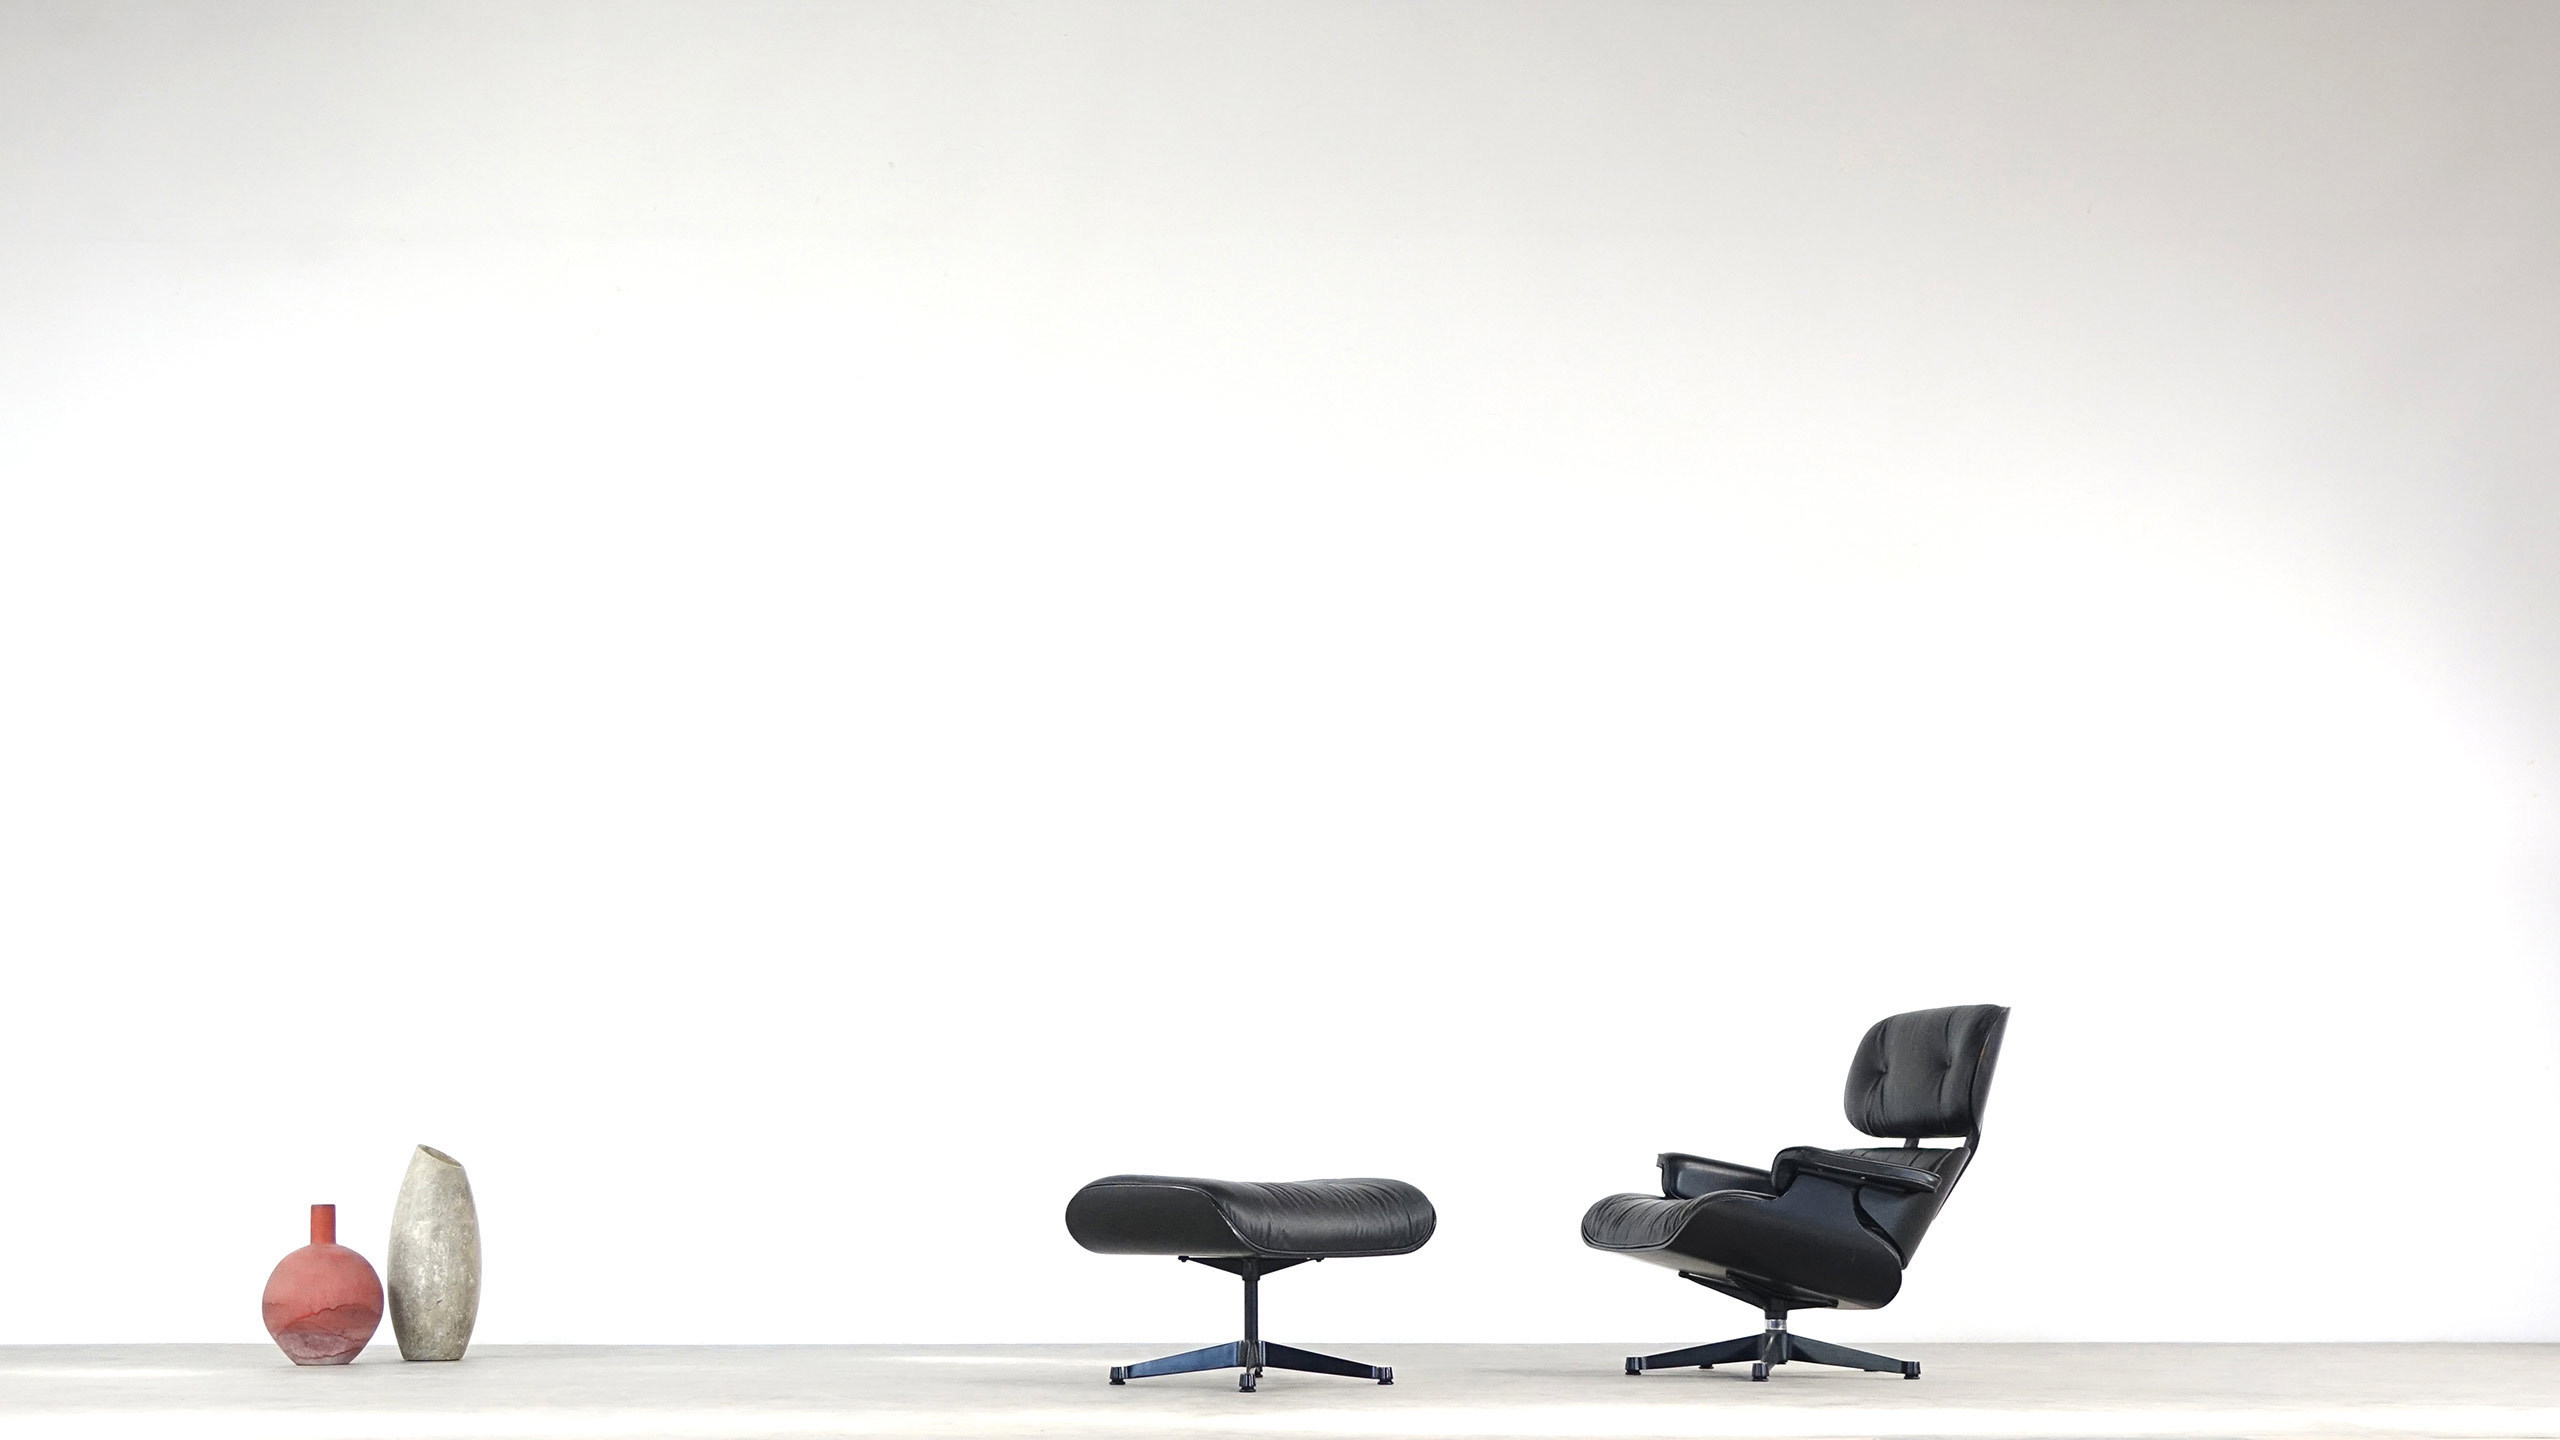 Vitra Chalres Eames : Charles ray eames herman miller lounge chair vitra